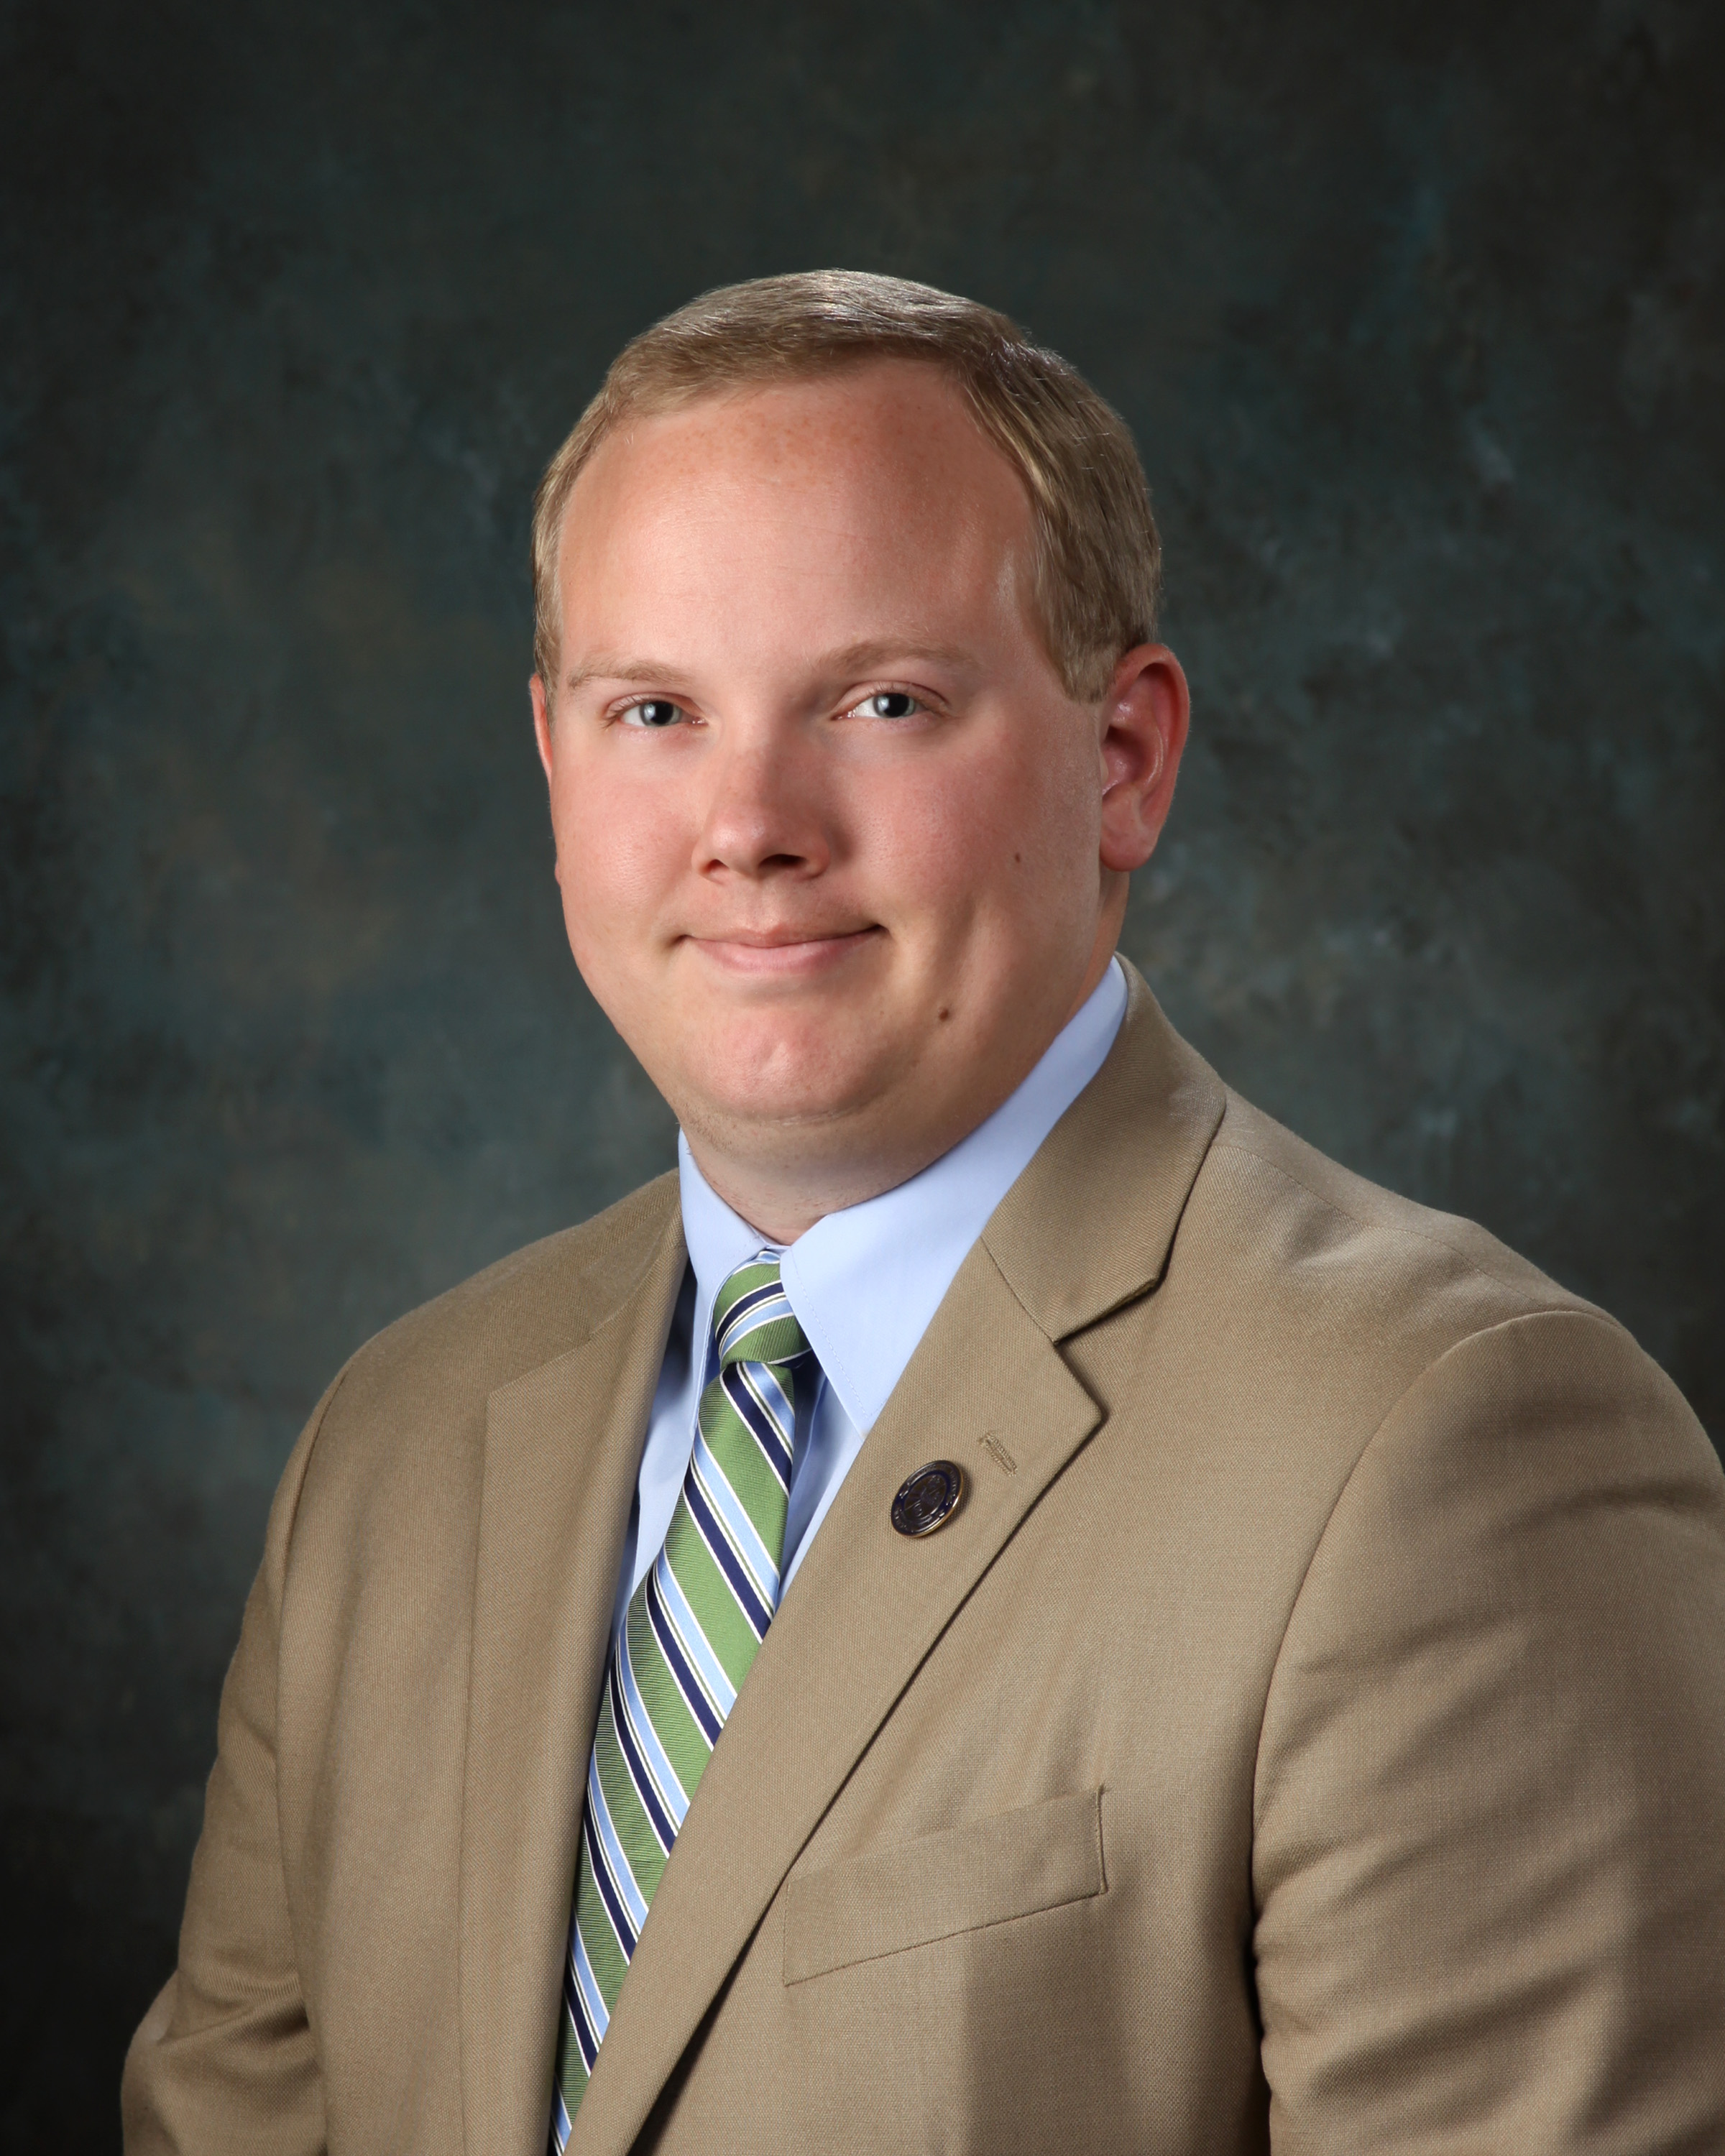 City Manager Travis L. Blosser